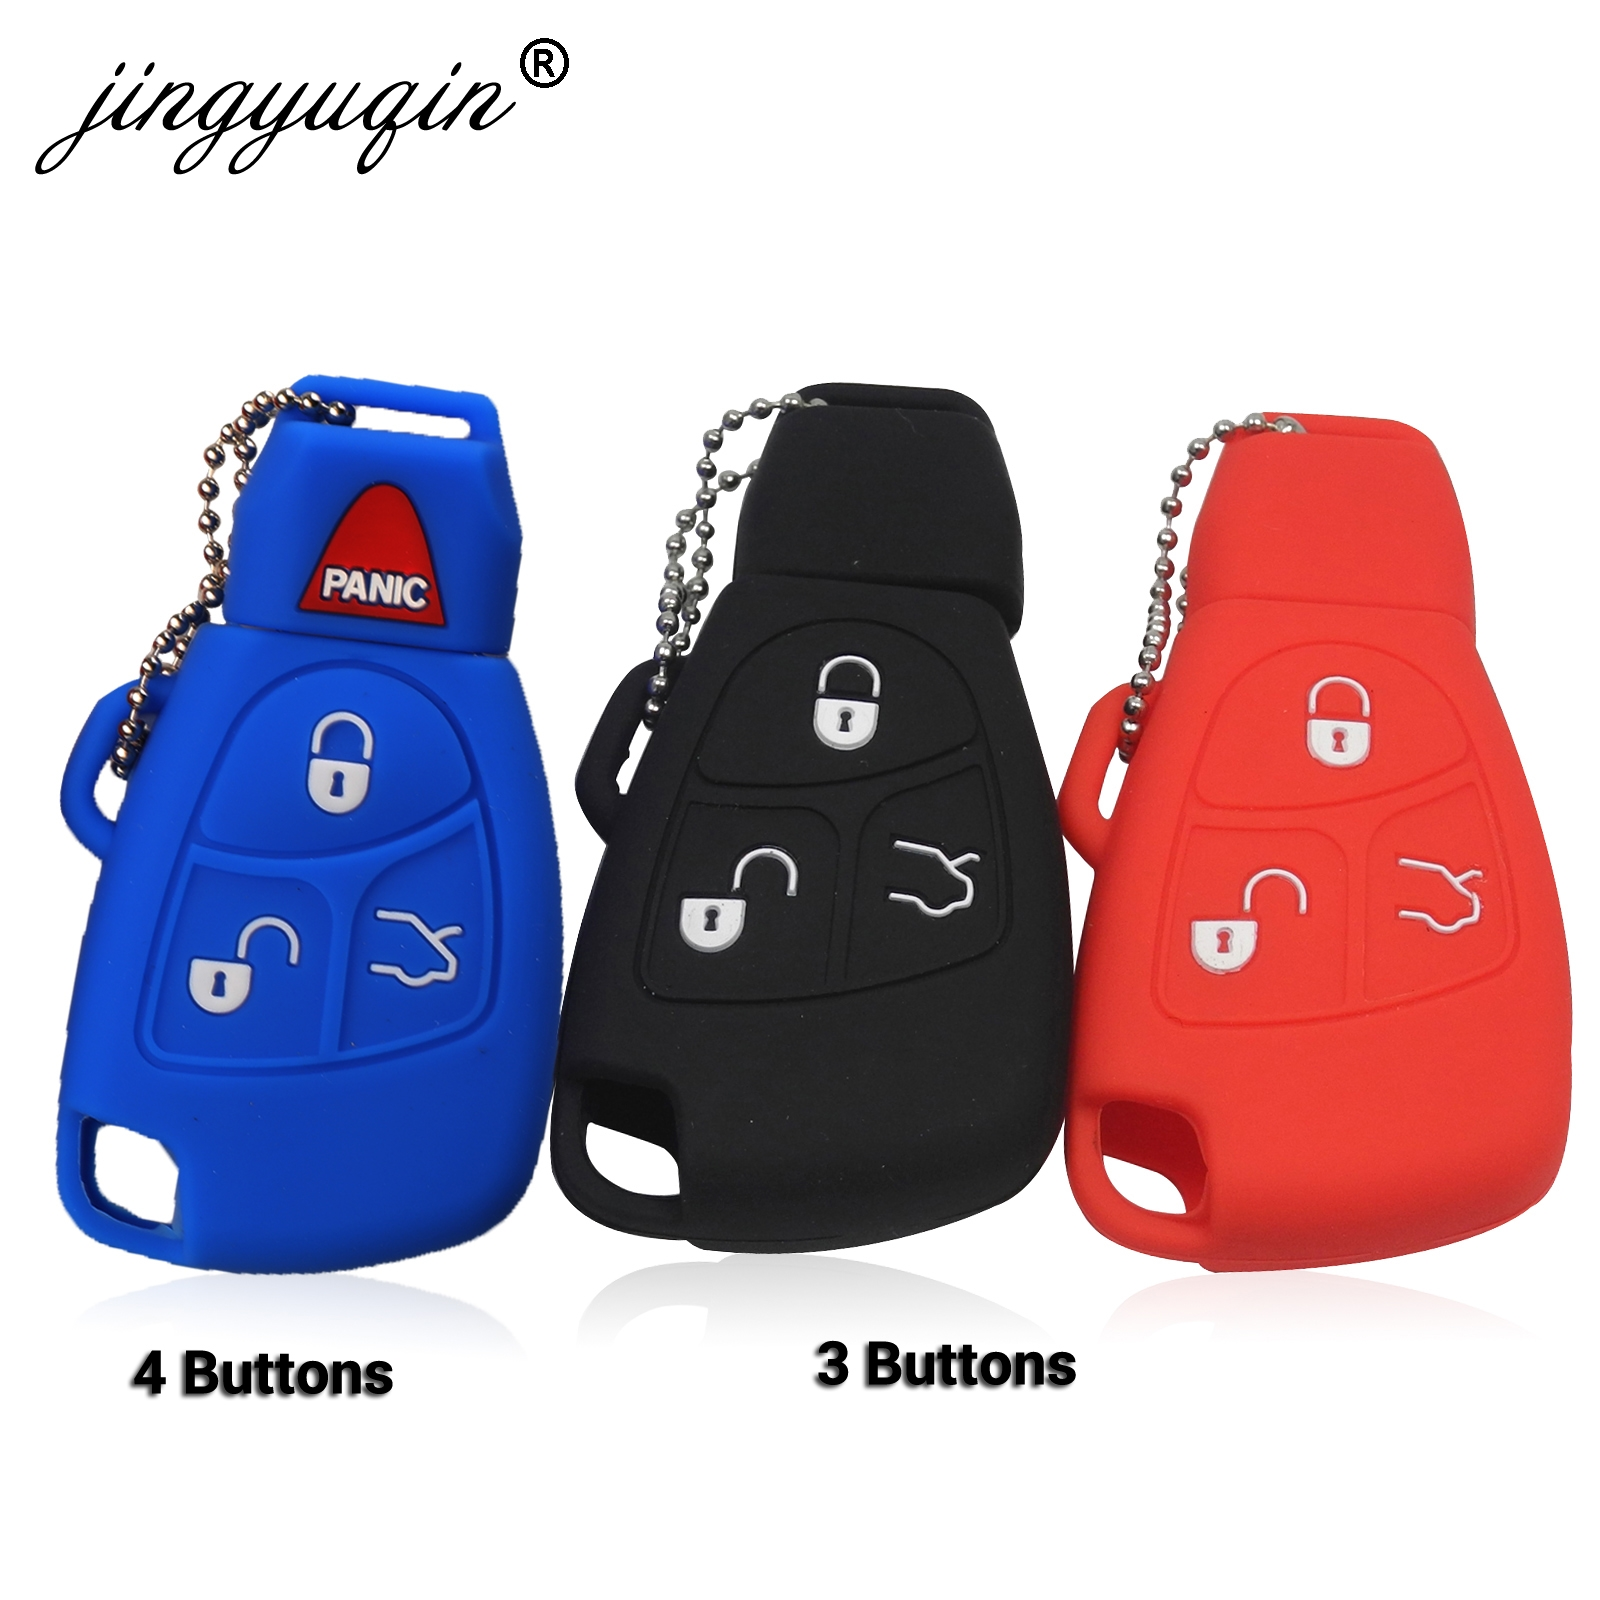 Jingyuqin Silicone Cover For Mercedes Benz B C E ML S CLK CL 3/4 Buttons Rubber Skin Remote Key Fob Case